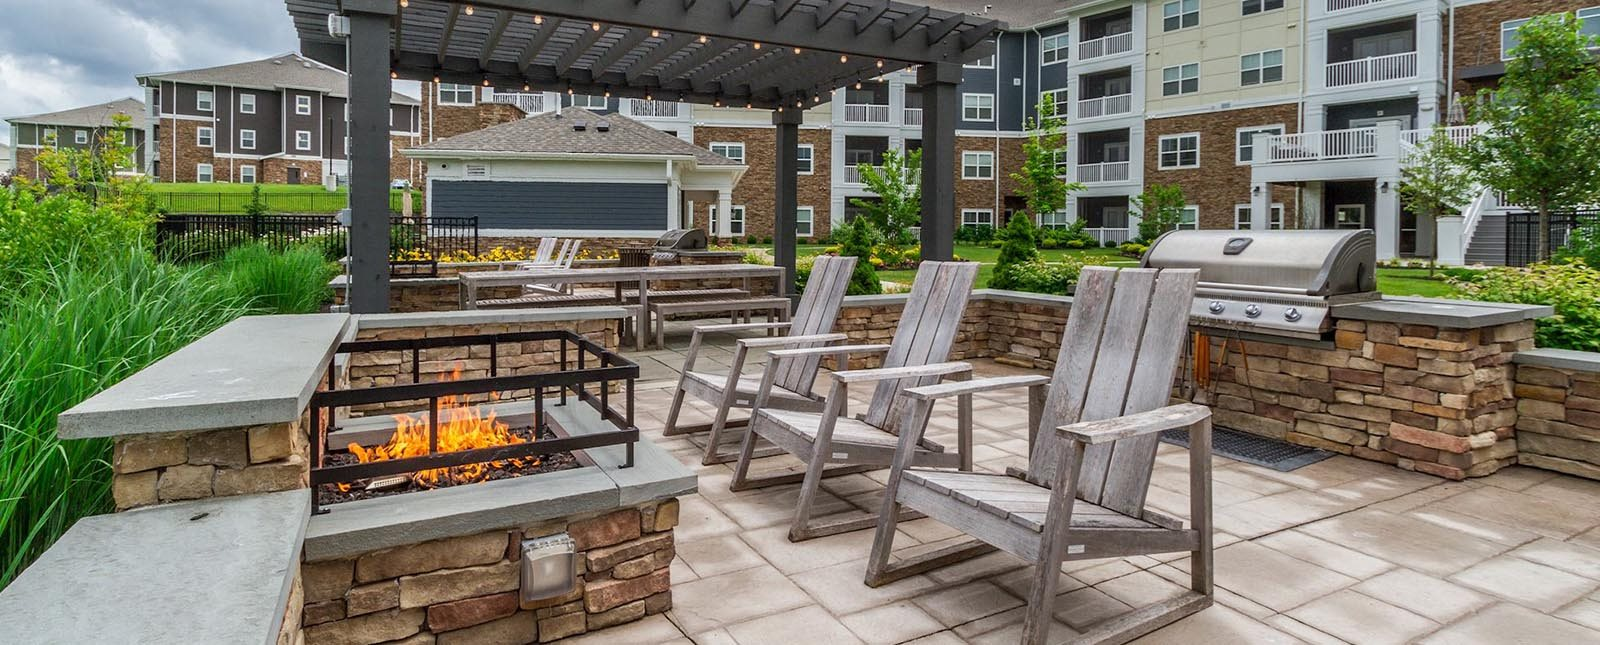 Outdoor Firepit of The Haven luxury apartments in Malvern, PA